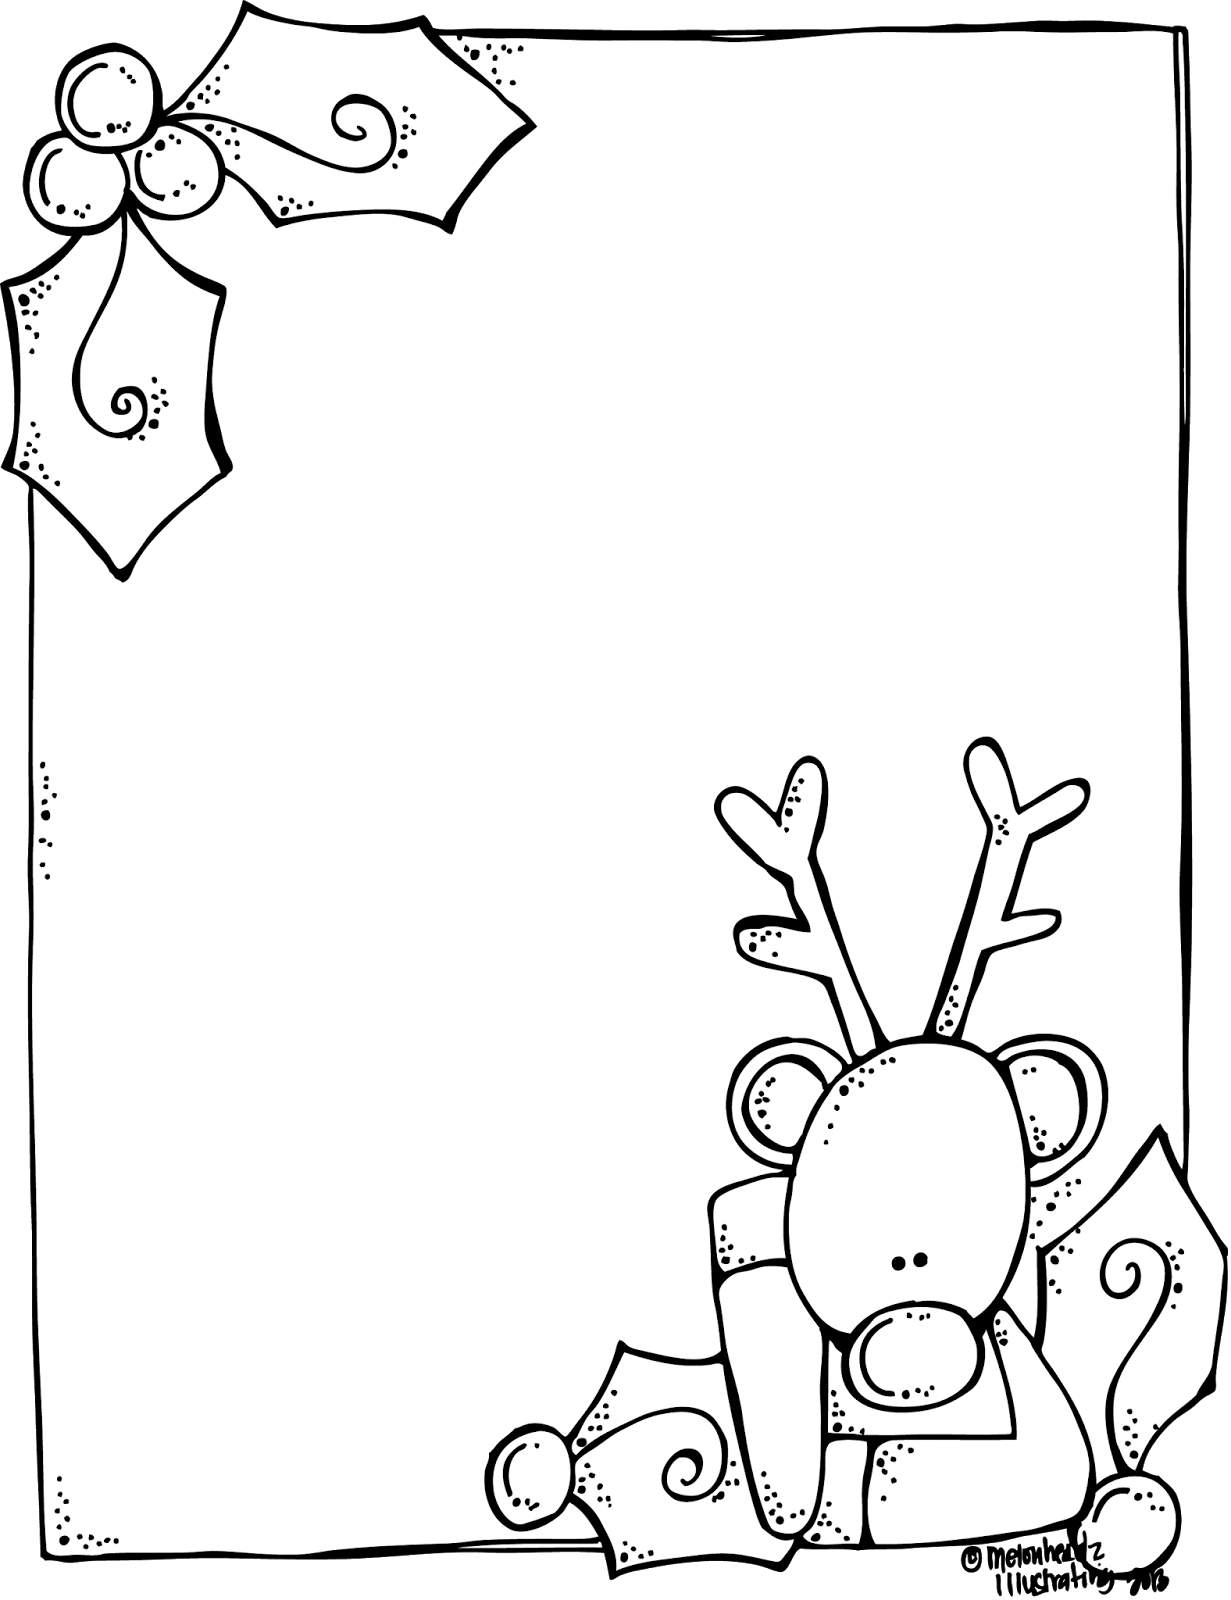 Melonheadz A Blank Rudolph Letter Form For Santa And It S Free